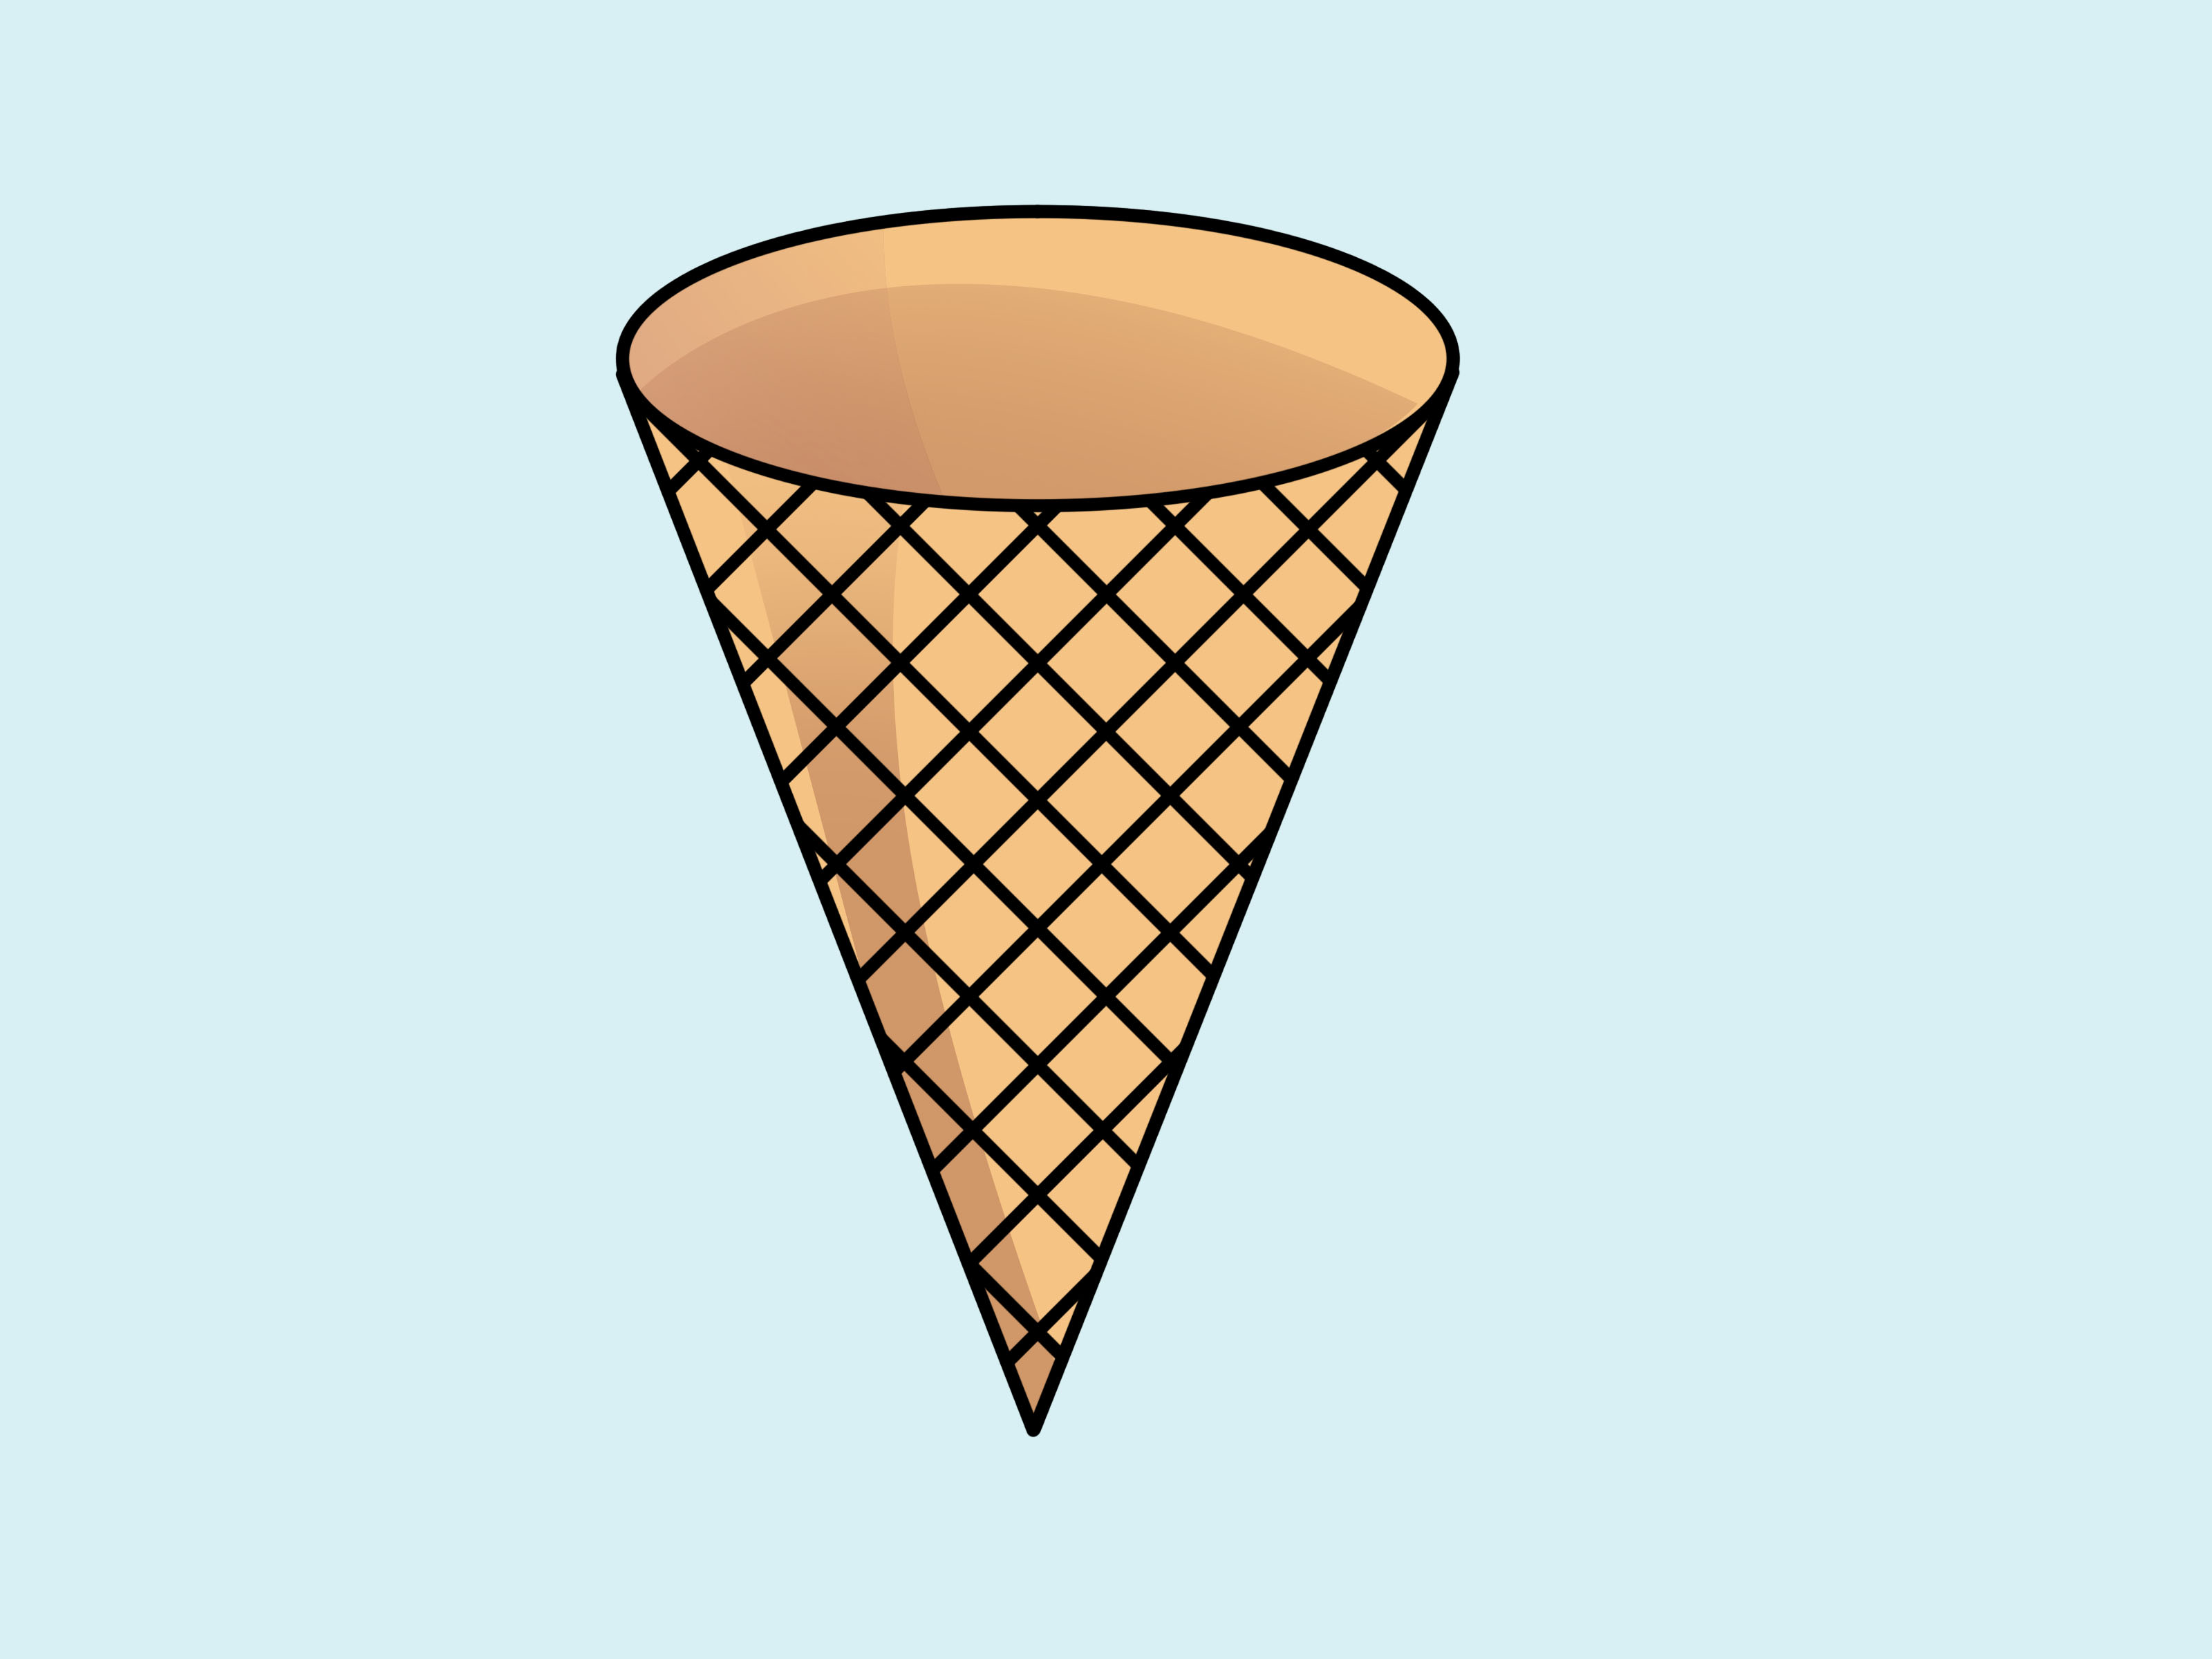 Cone clipart cute Transparent pictures on F.